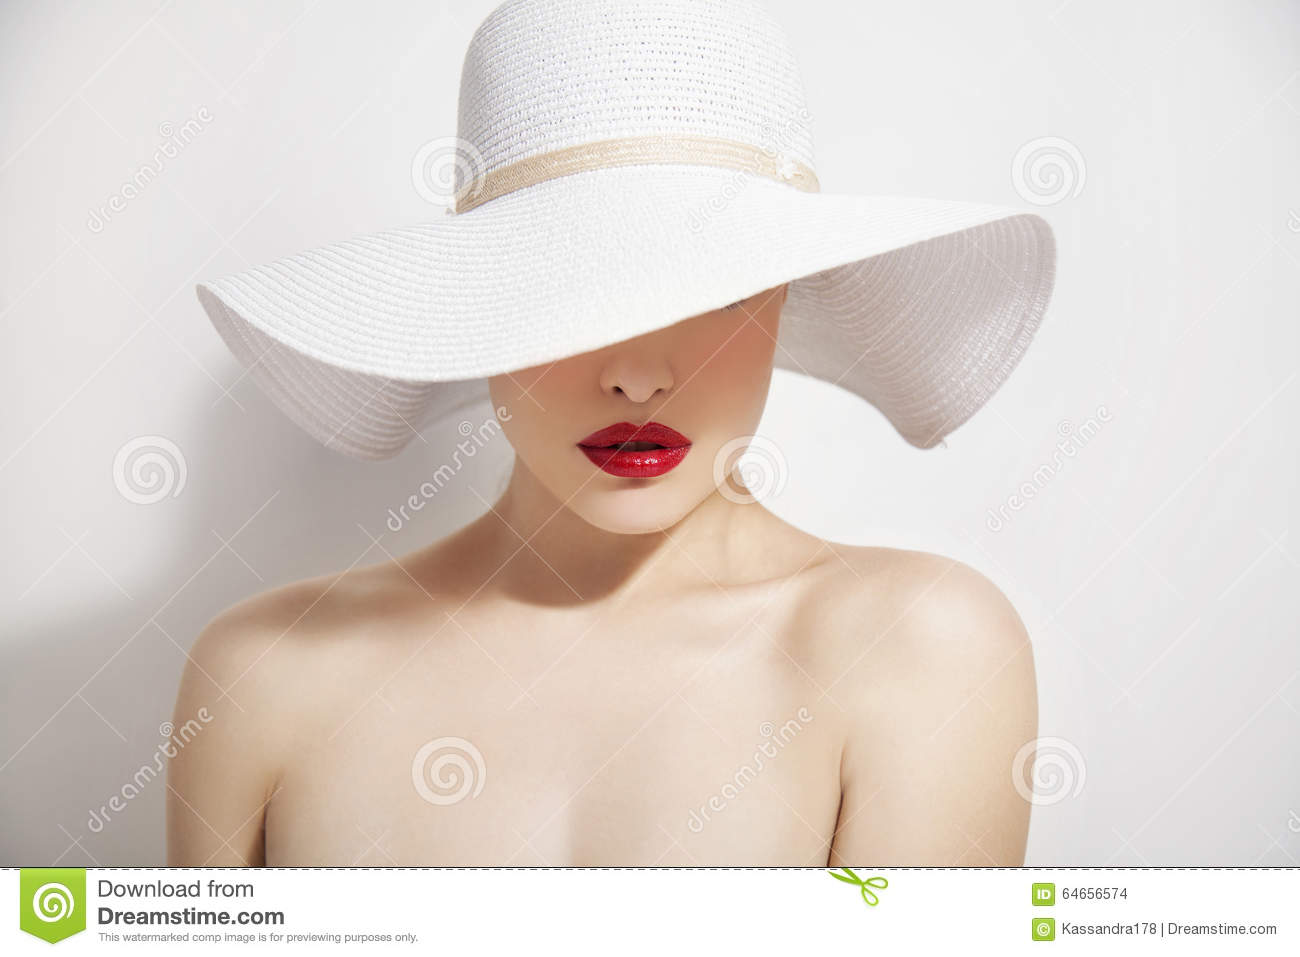 Red lips and white hat stock photo. Image of shopping - 64656574 f9856b38752